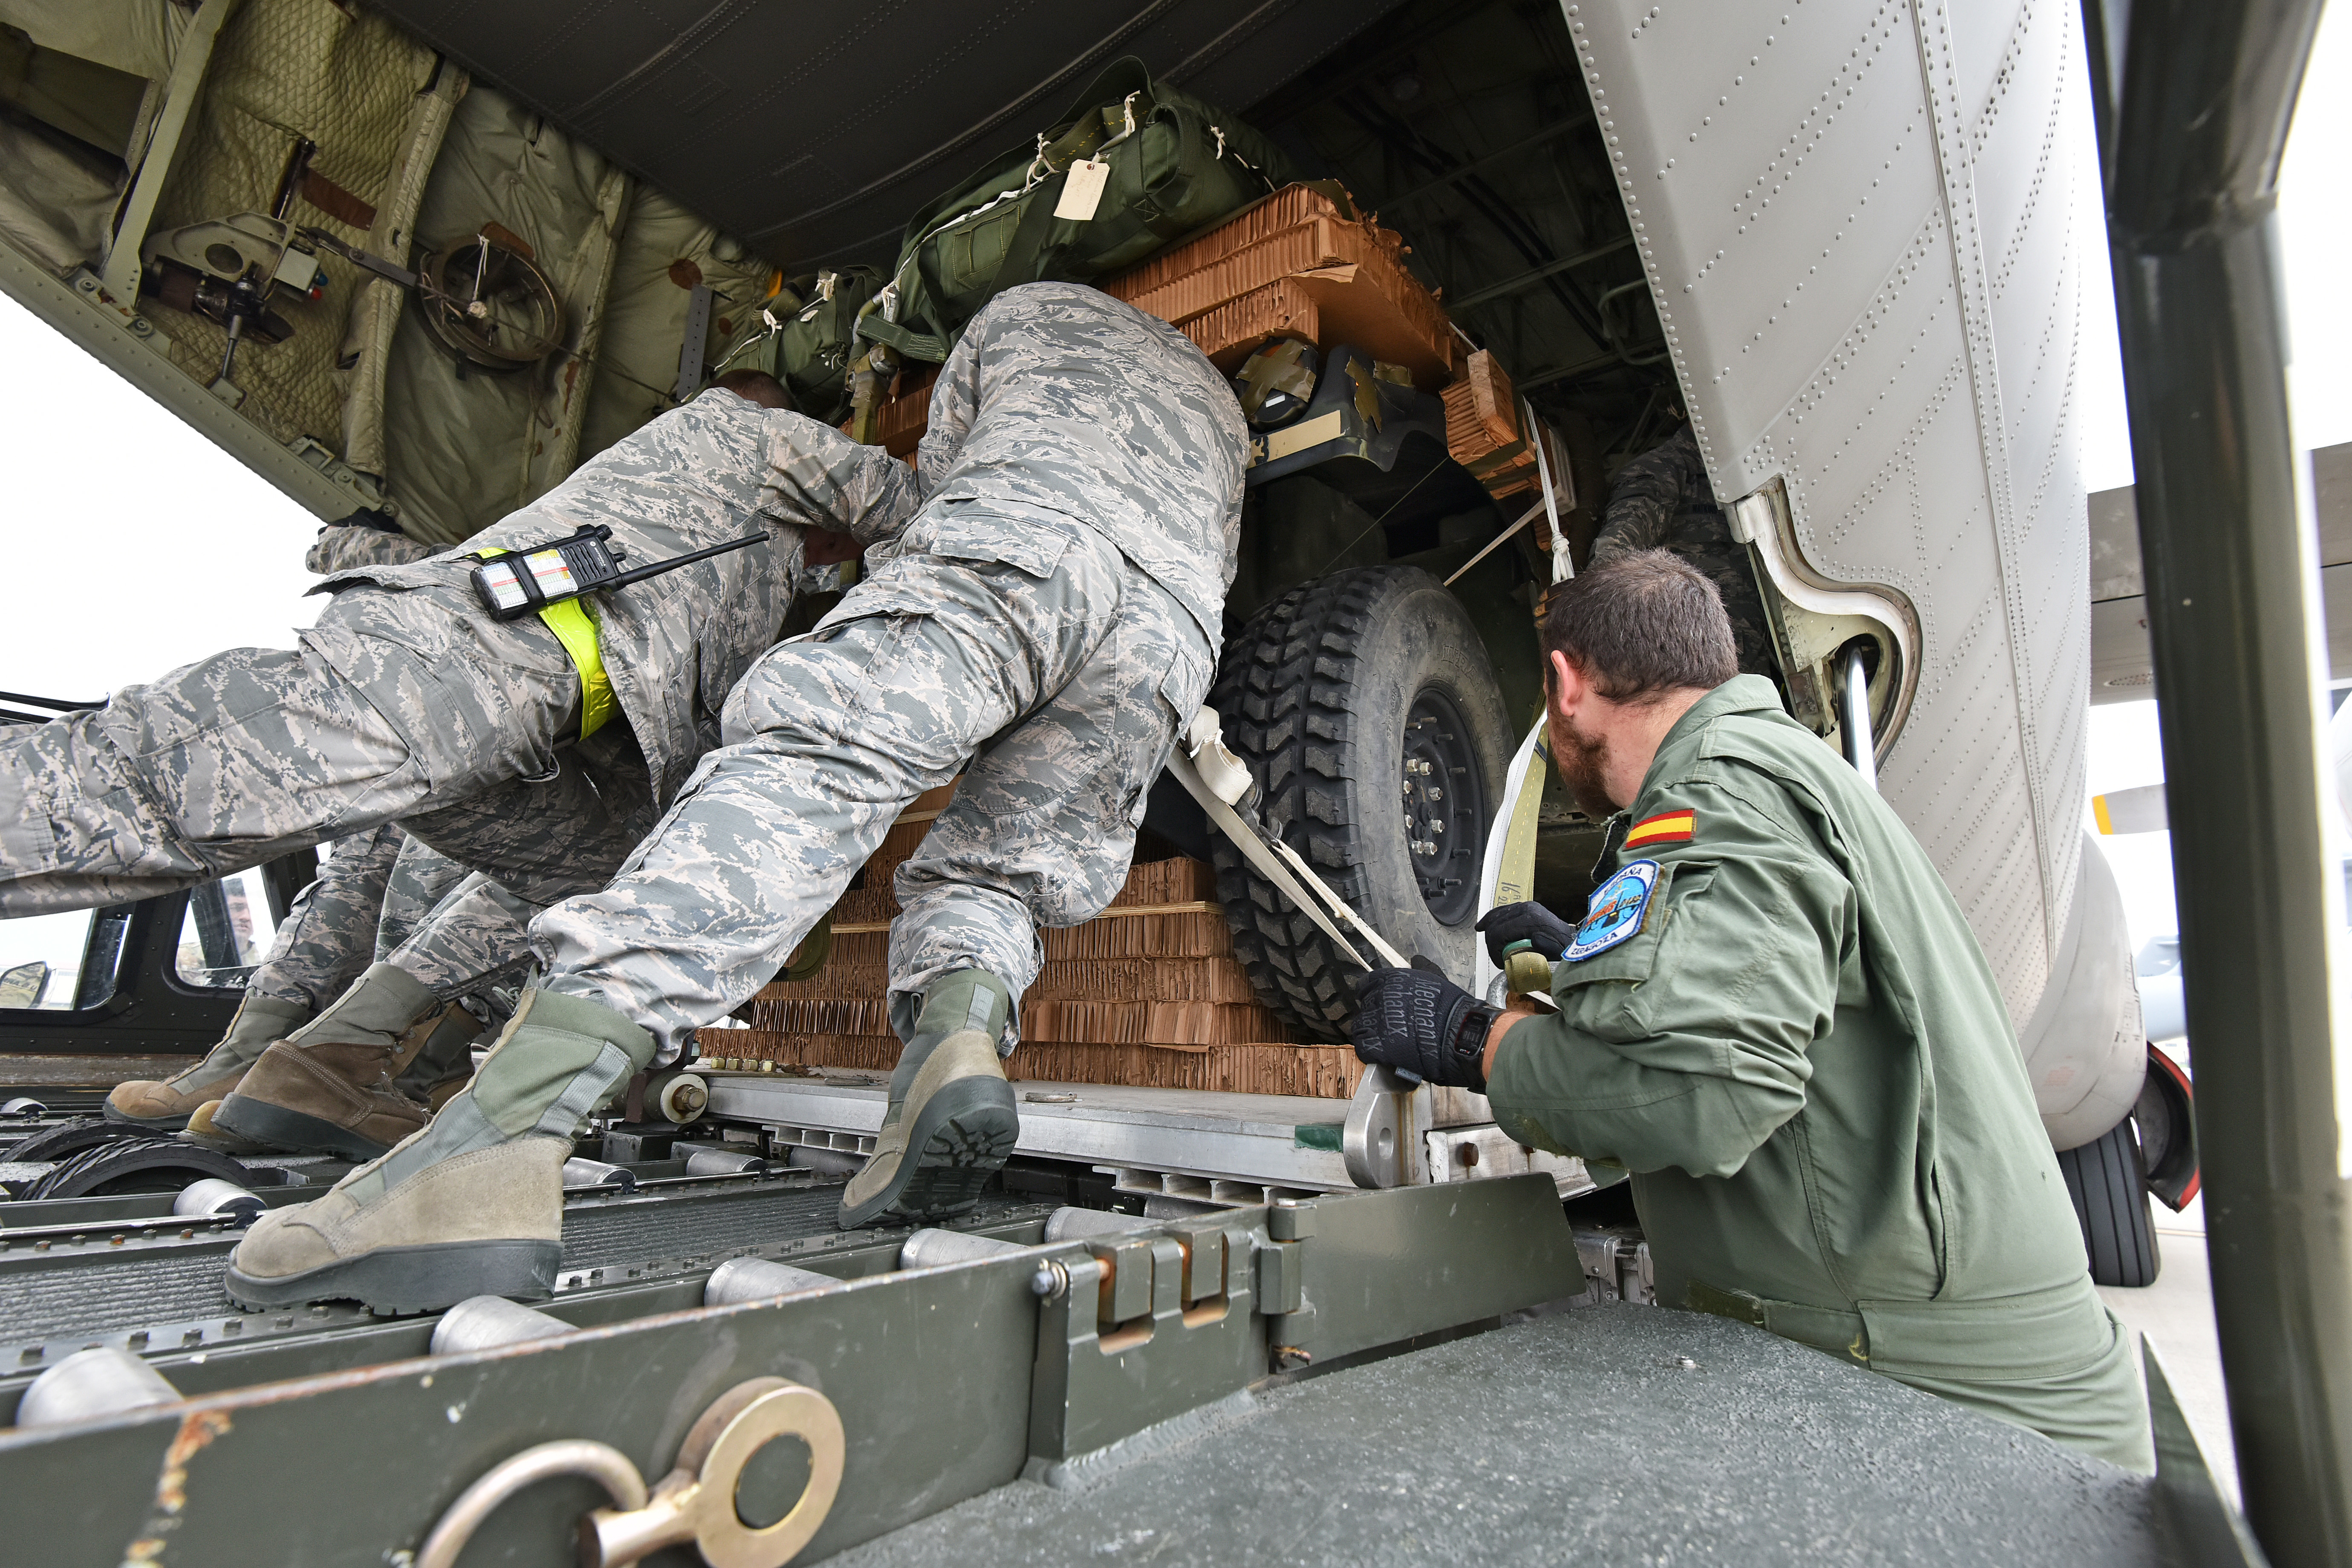 Two High Mobility Multipurpose Wheeled Vehicles from 2nd Battalion, 503rd Infantry Regiment, 173rd Airborne Brigade are loaded into a Spanish Air Force C-130 Hercules from ALA 31st at Aviano Air Base, Italy, Oct. 11, 2017 during Exercise Swift Response 2017, Phase 2. Swift Response links to Exercise Saber Guardian 17, a U.S. Army Europe-led, multinational exercise that spans across Bulgaria, Hungary, and Romania with more than 25,000 service members from 22 allied and partner nations. (U.S. Army Photos by Visual Information Specialist Paolo Bovo/Released)